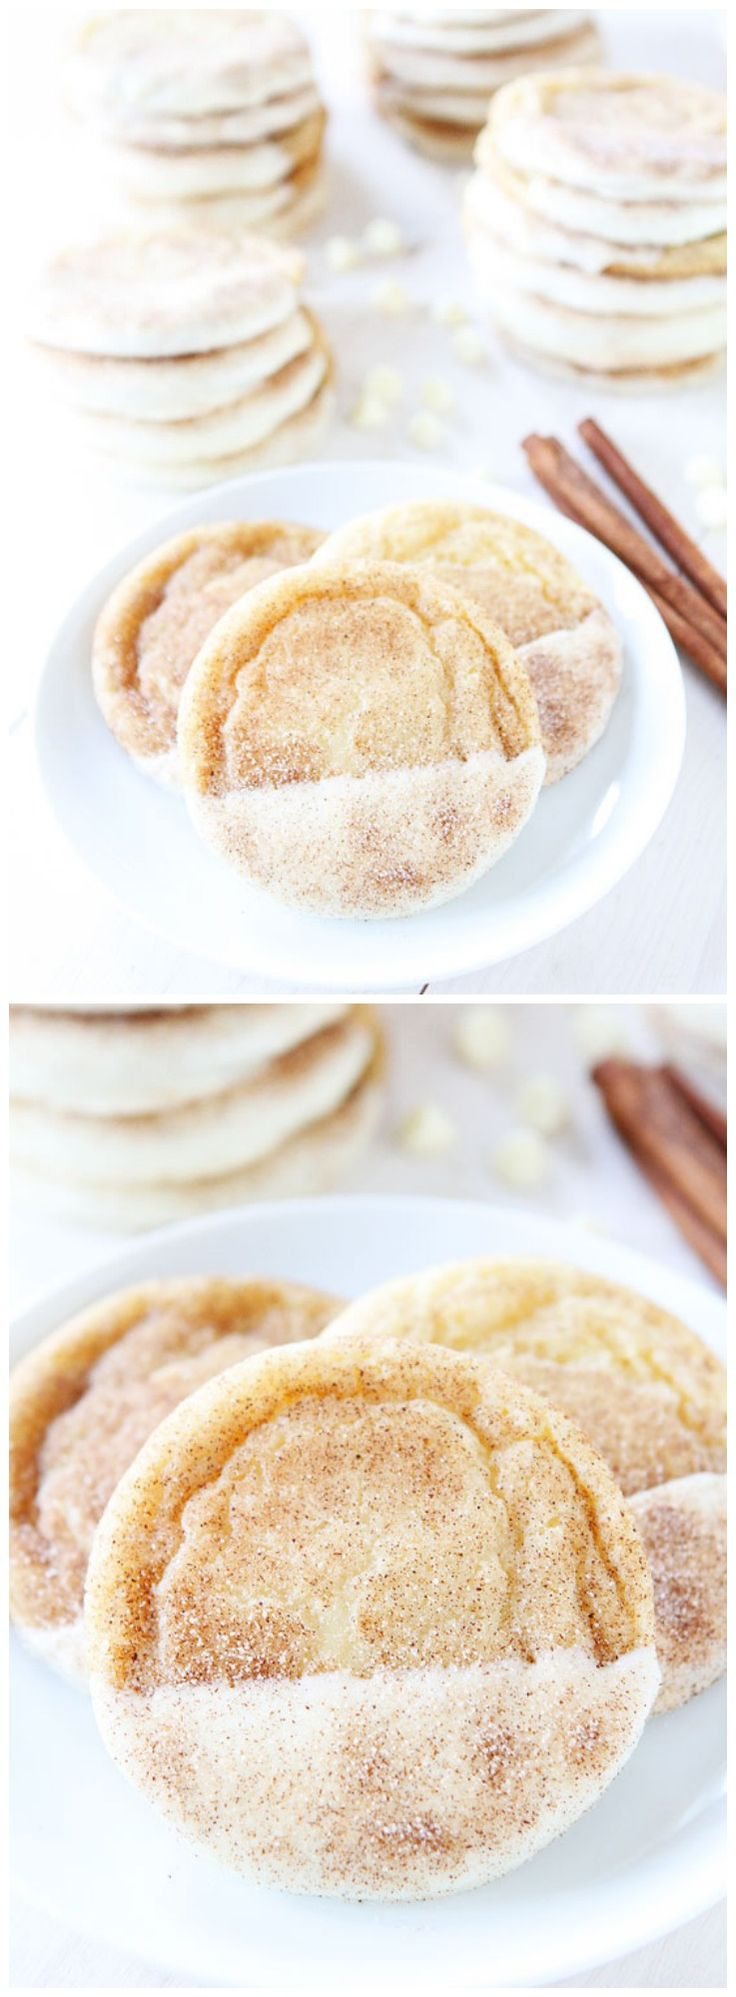 White Chocolate Dipped Snickerdoodle Recipe on twopeasandtheirpod.com  These are the BEST snickerdoodles! They are pretty too!